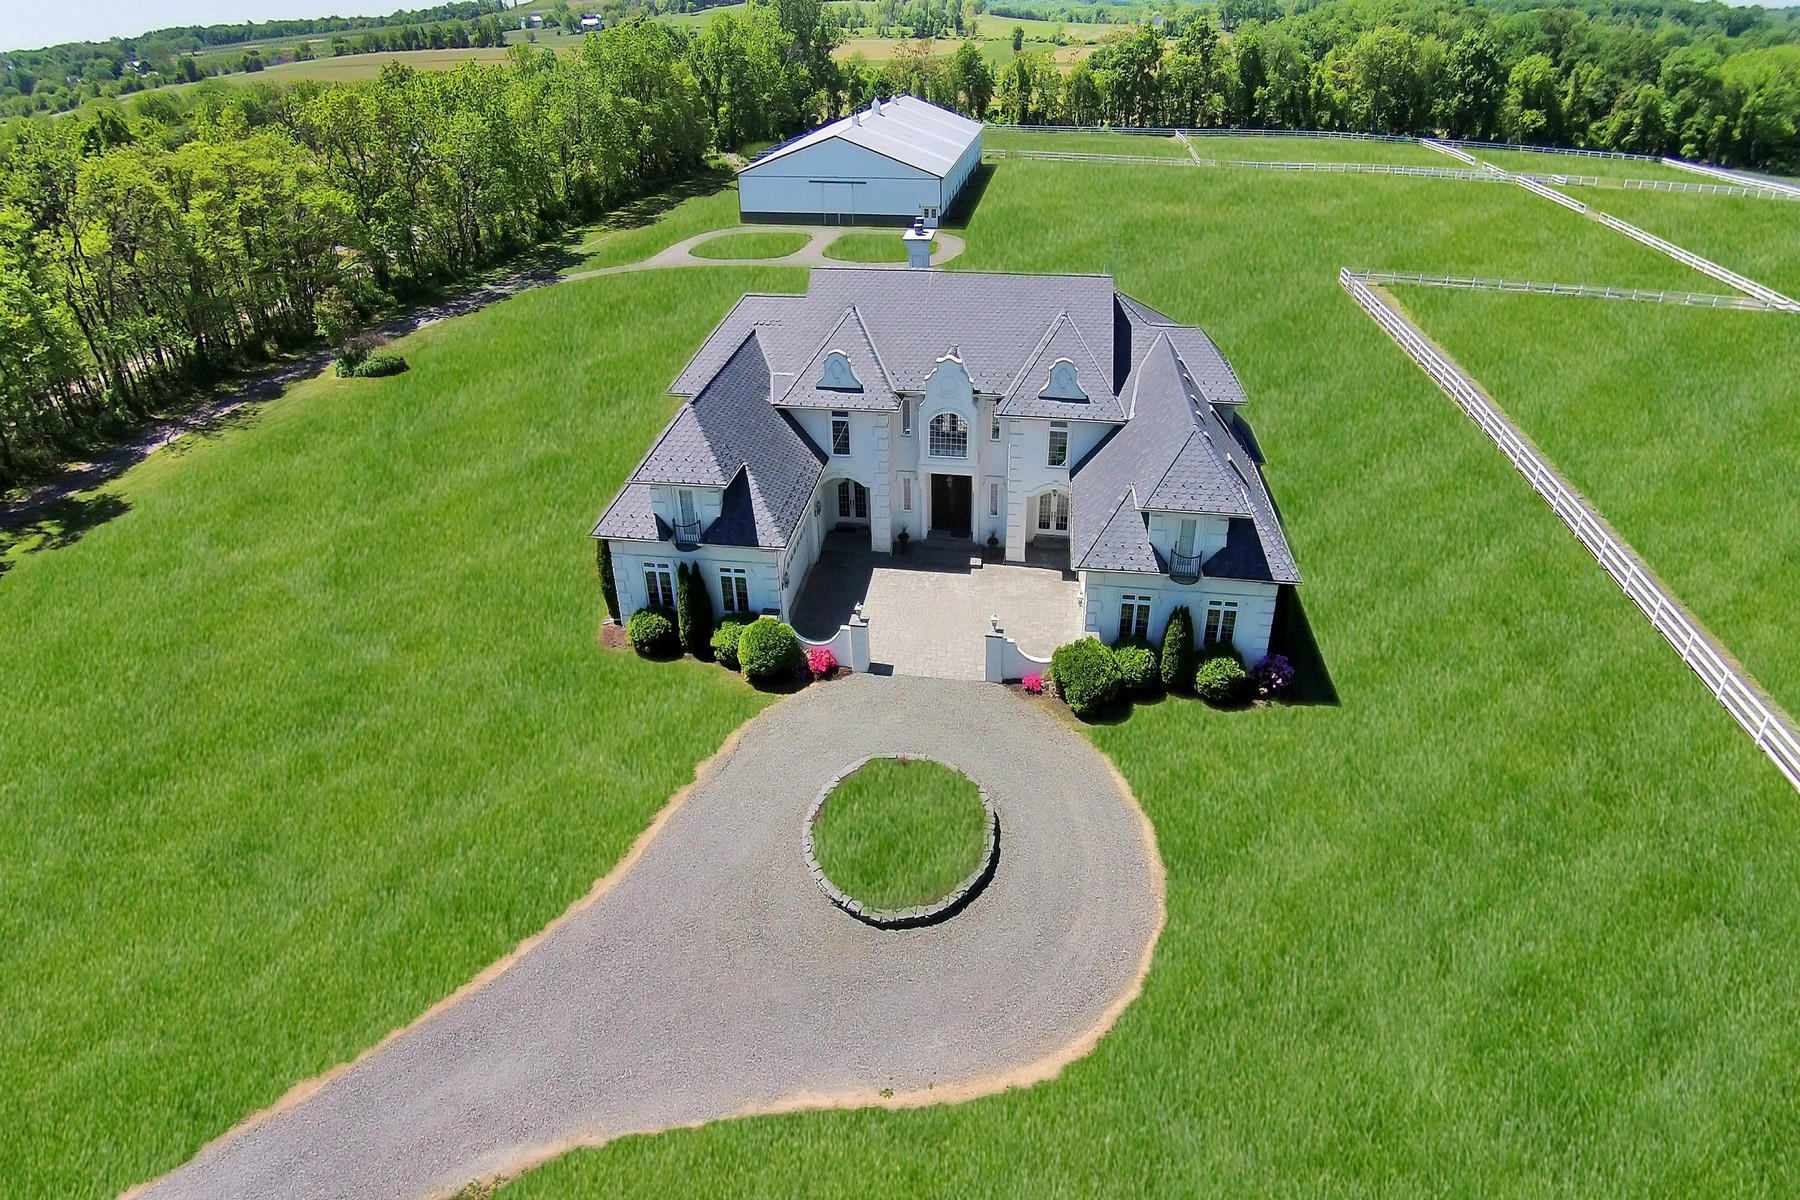 Single Family Home for Sale at Luxurious French Manor 3-5 Hill and Dale Lebanon, New Jersey 08833 United States